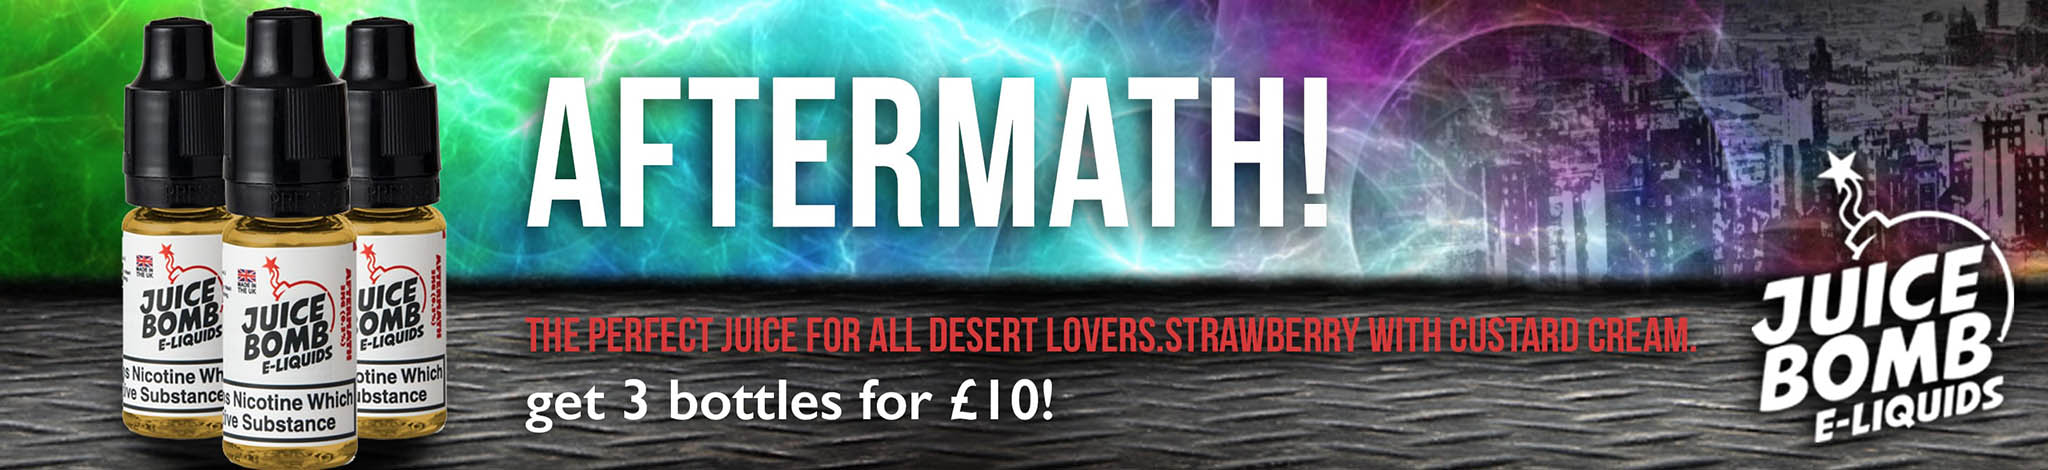 Aftermath web banner 2018